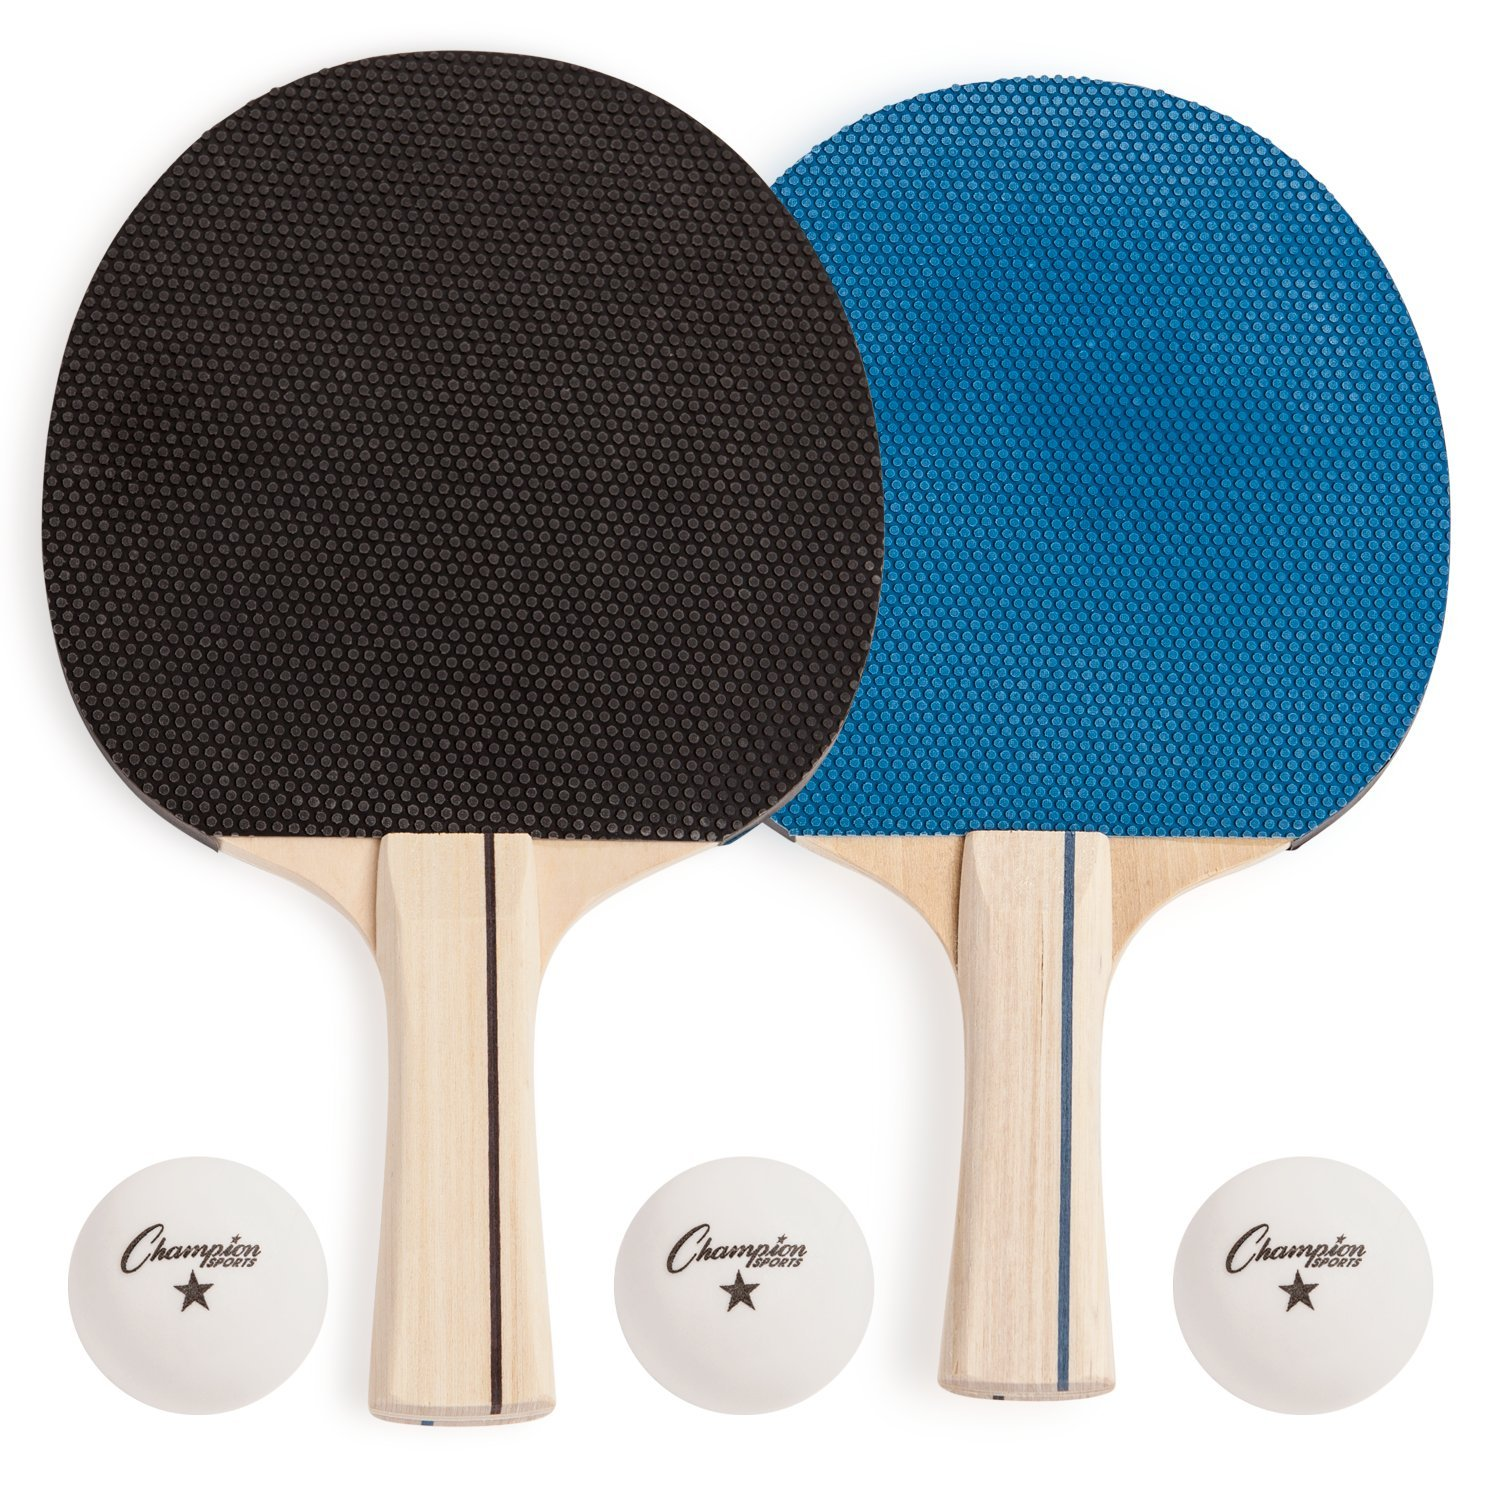 f1b561af9 Champion Sports Anywhere Table Tennis to Go Set